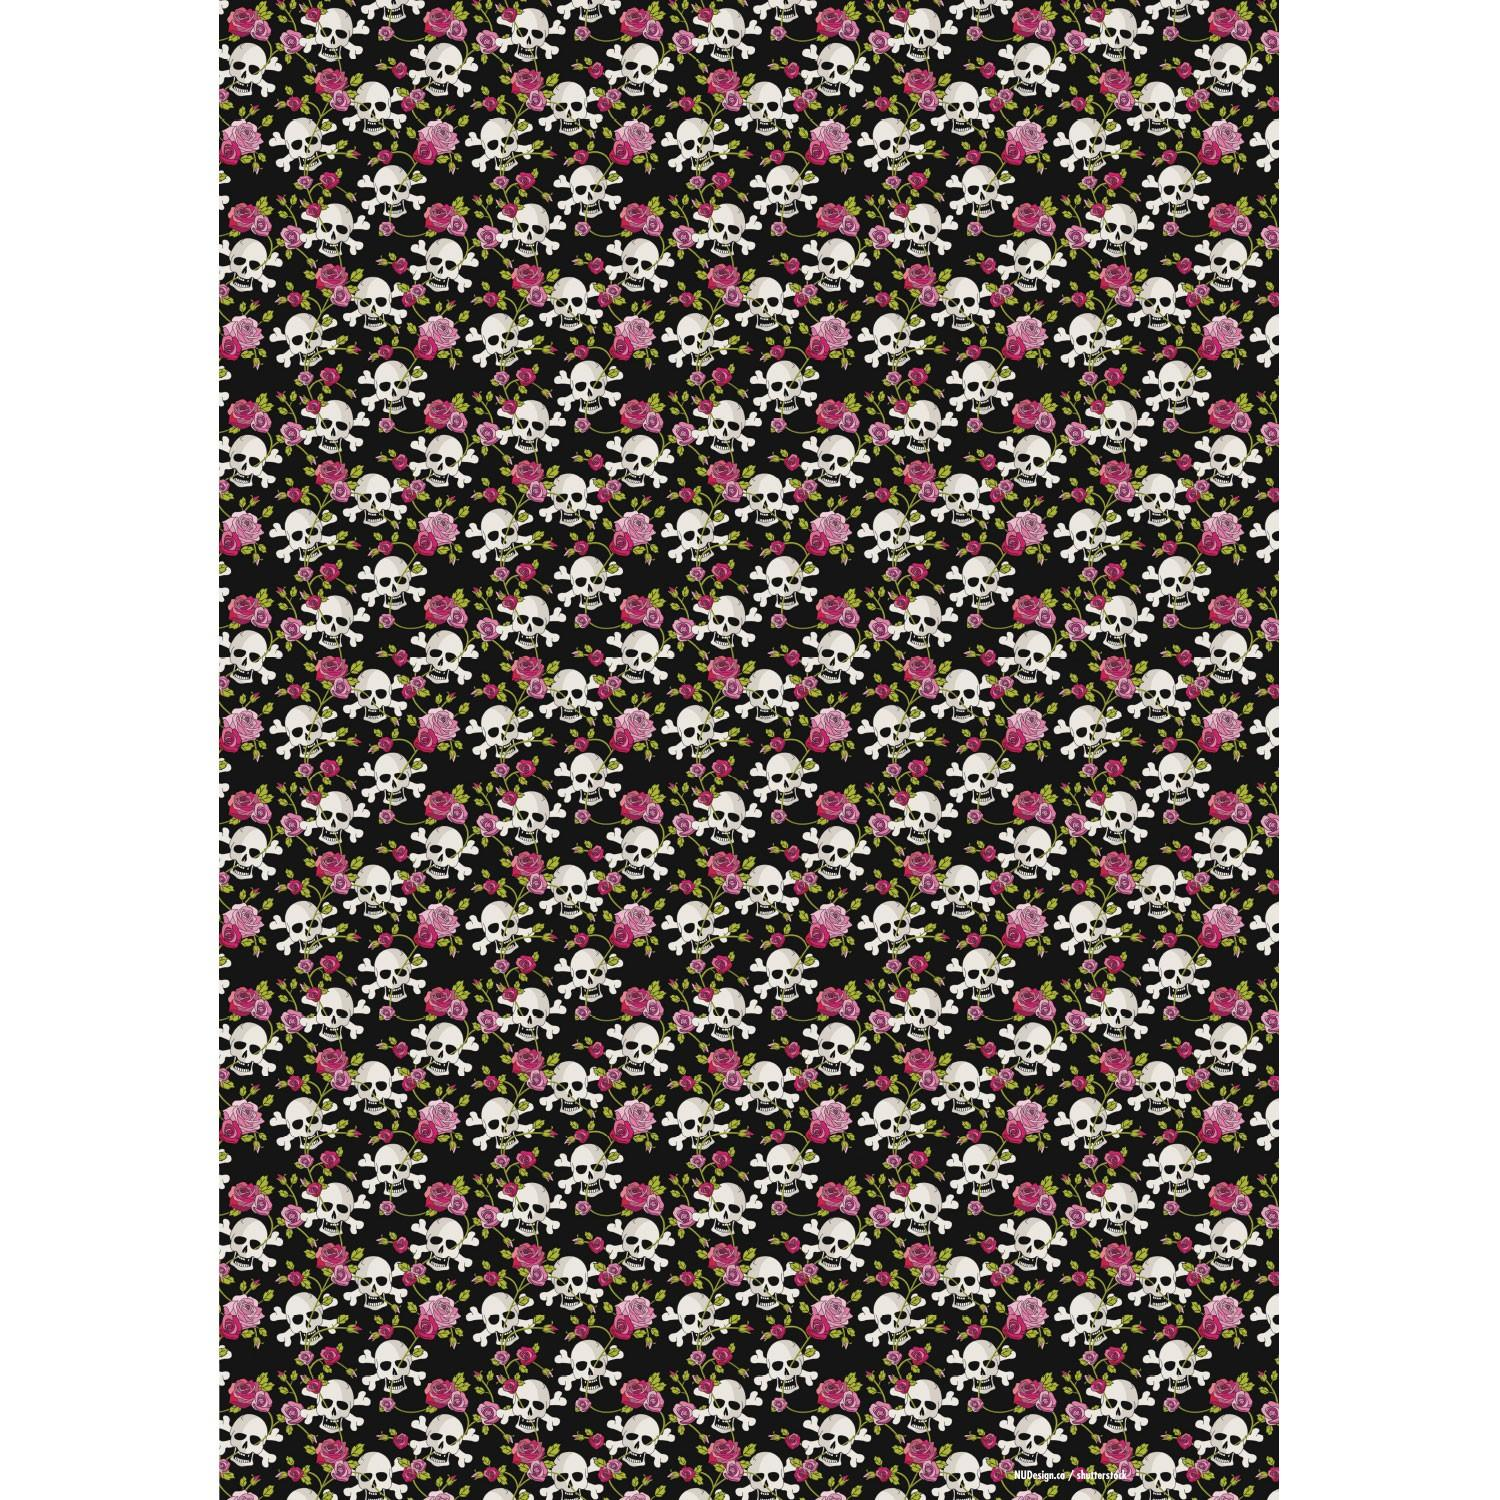 Wrapping paper skull with red roses - 10er Set